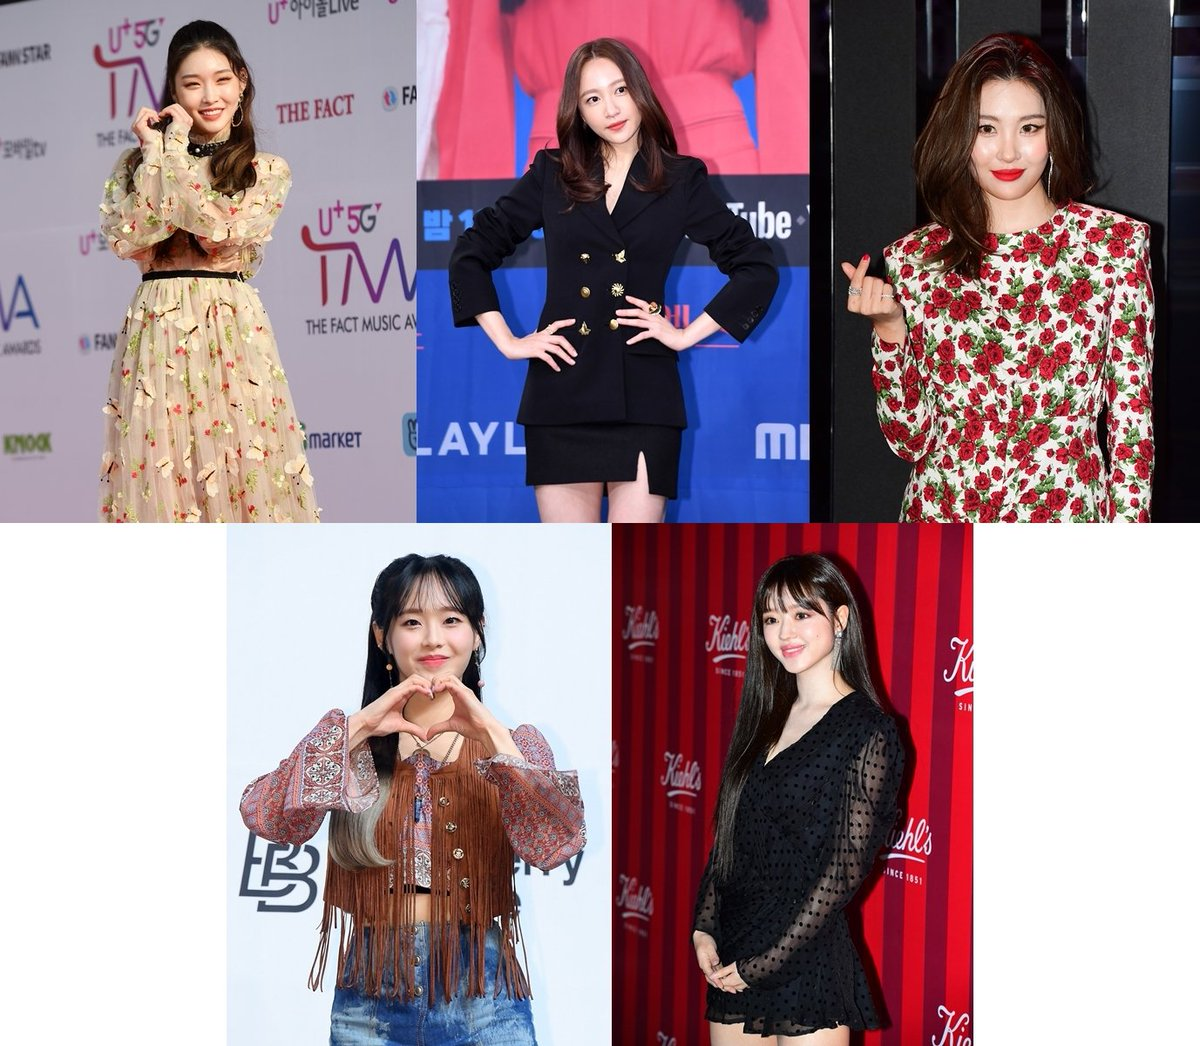 [EN] 201125 #LOONA Chuu to appear on Mnet <Running Girls> with Chungha, Sunmi, EXIDs Hani & Oh My Girls Yooa airing its 1st episode on December 9th at 7:50pm for 4 weeks 🔗ytn.co.kr/_sn/0117_20201… Note: Chuu was confirmed yesterday @loonatheworld #이달의소녀